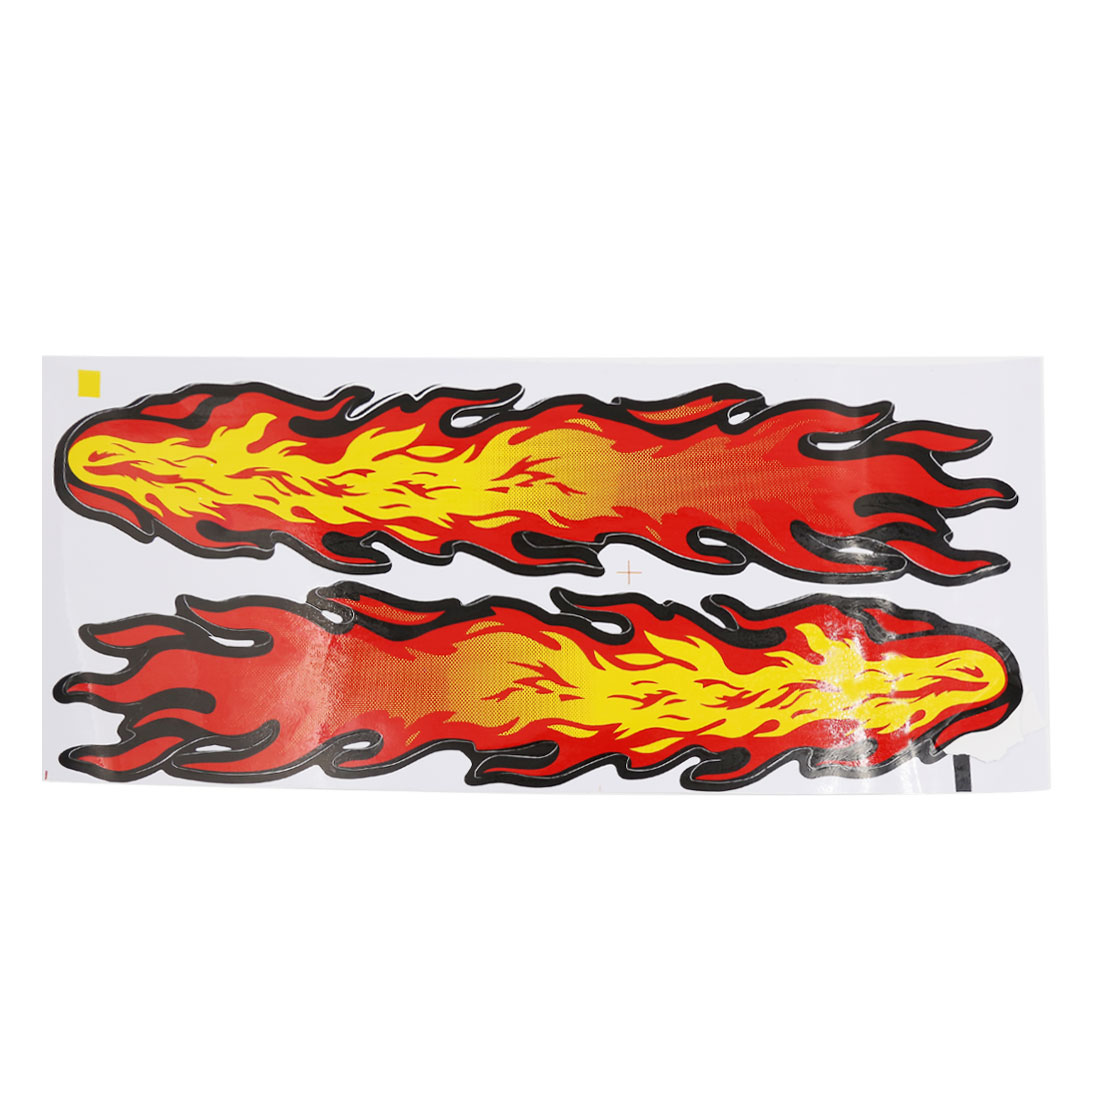 37cm x 7.5cm Fire Flame Pattern Car Adhesive Back Decorative Sticker Decal